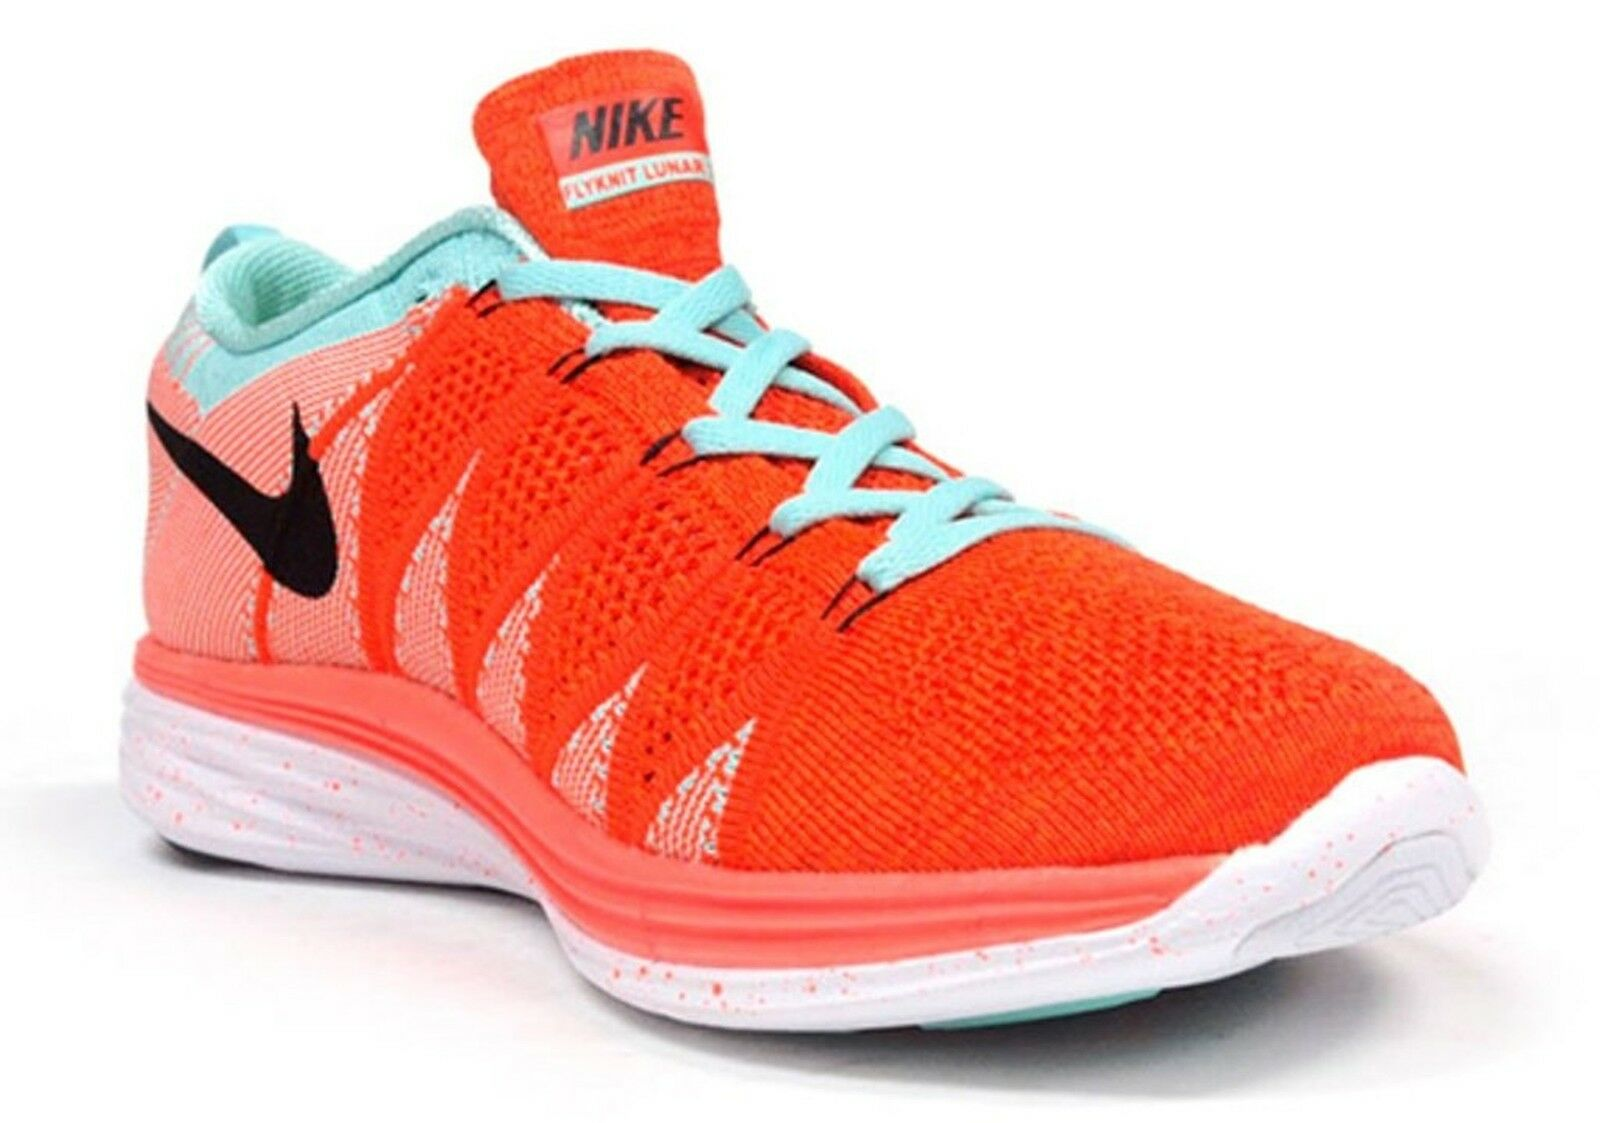 'New Mens Nike Flyknit Lunar 2 Comfortable fit Lightweight 620465 803, Comfortable The latest discount shoes for men and women